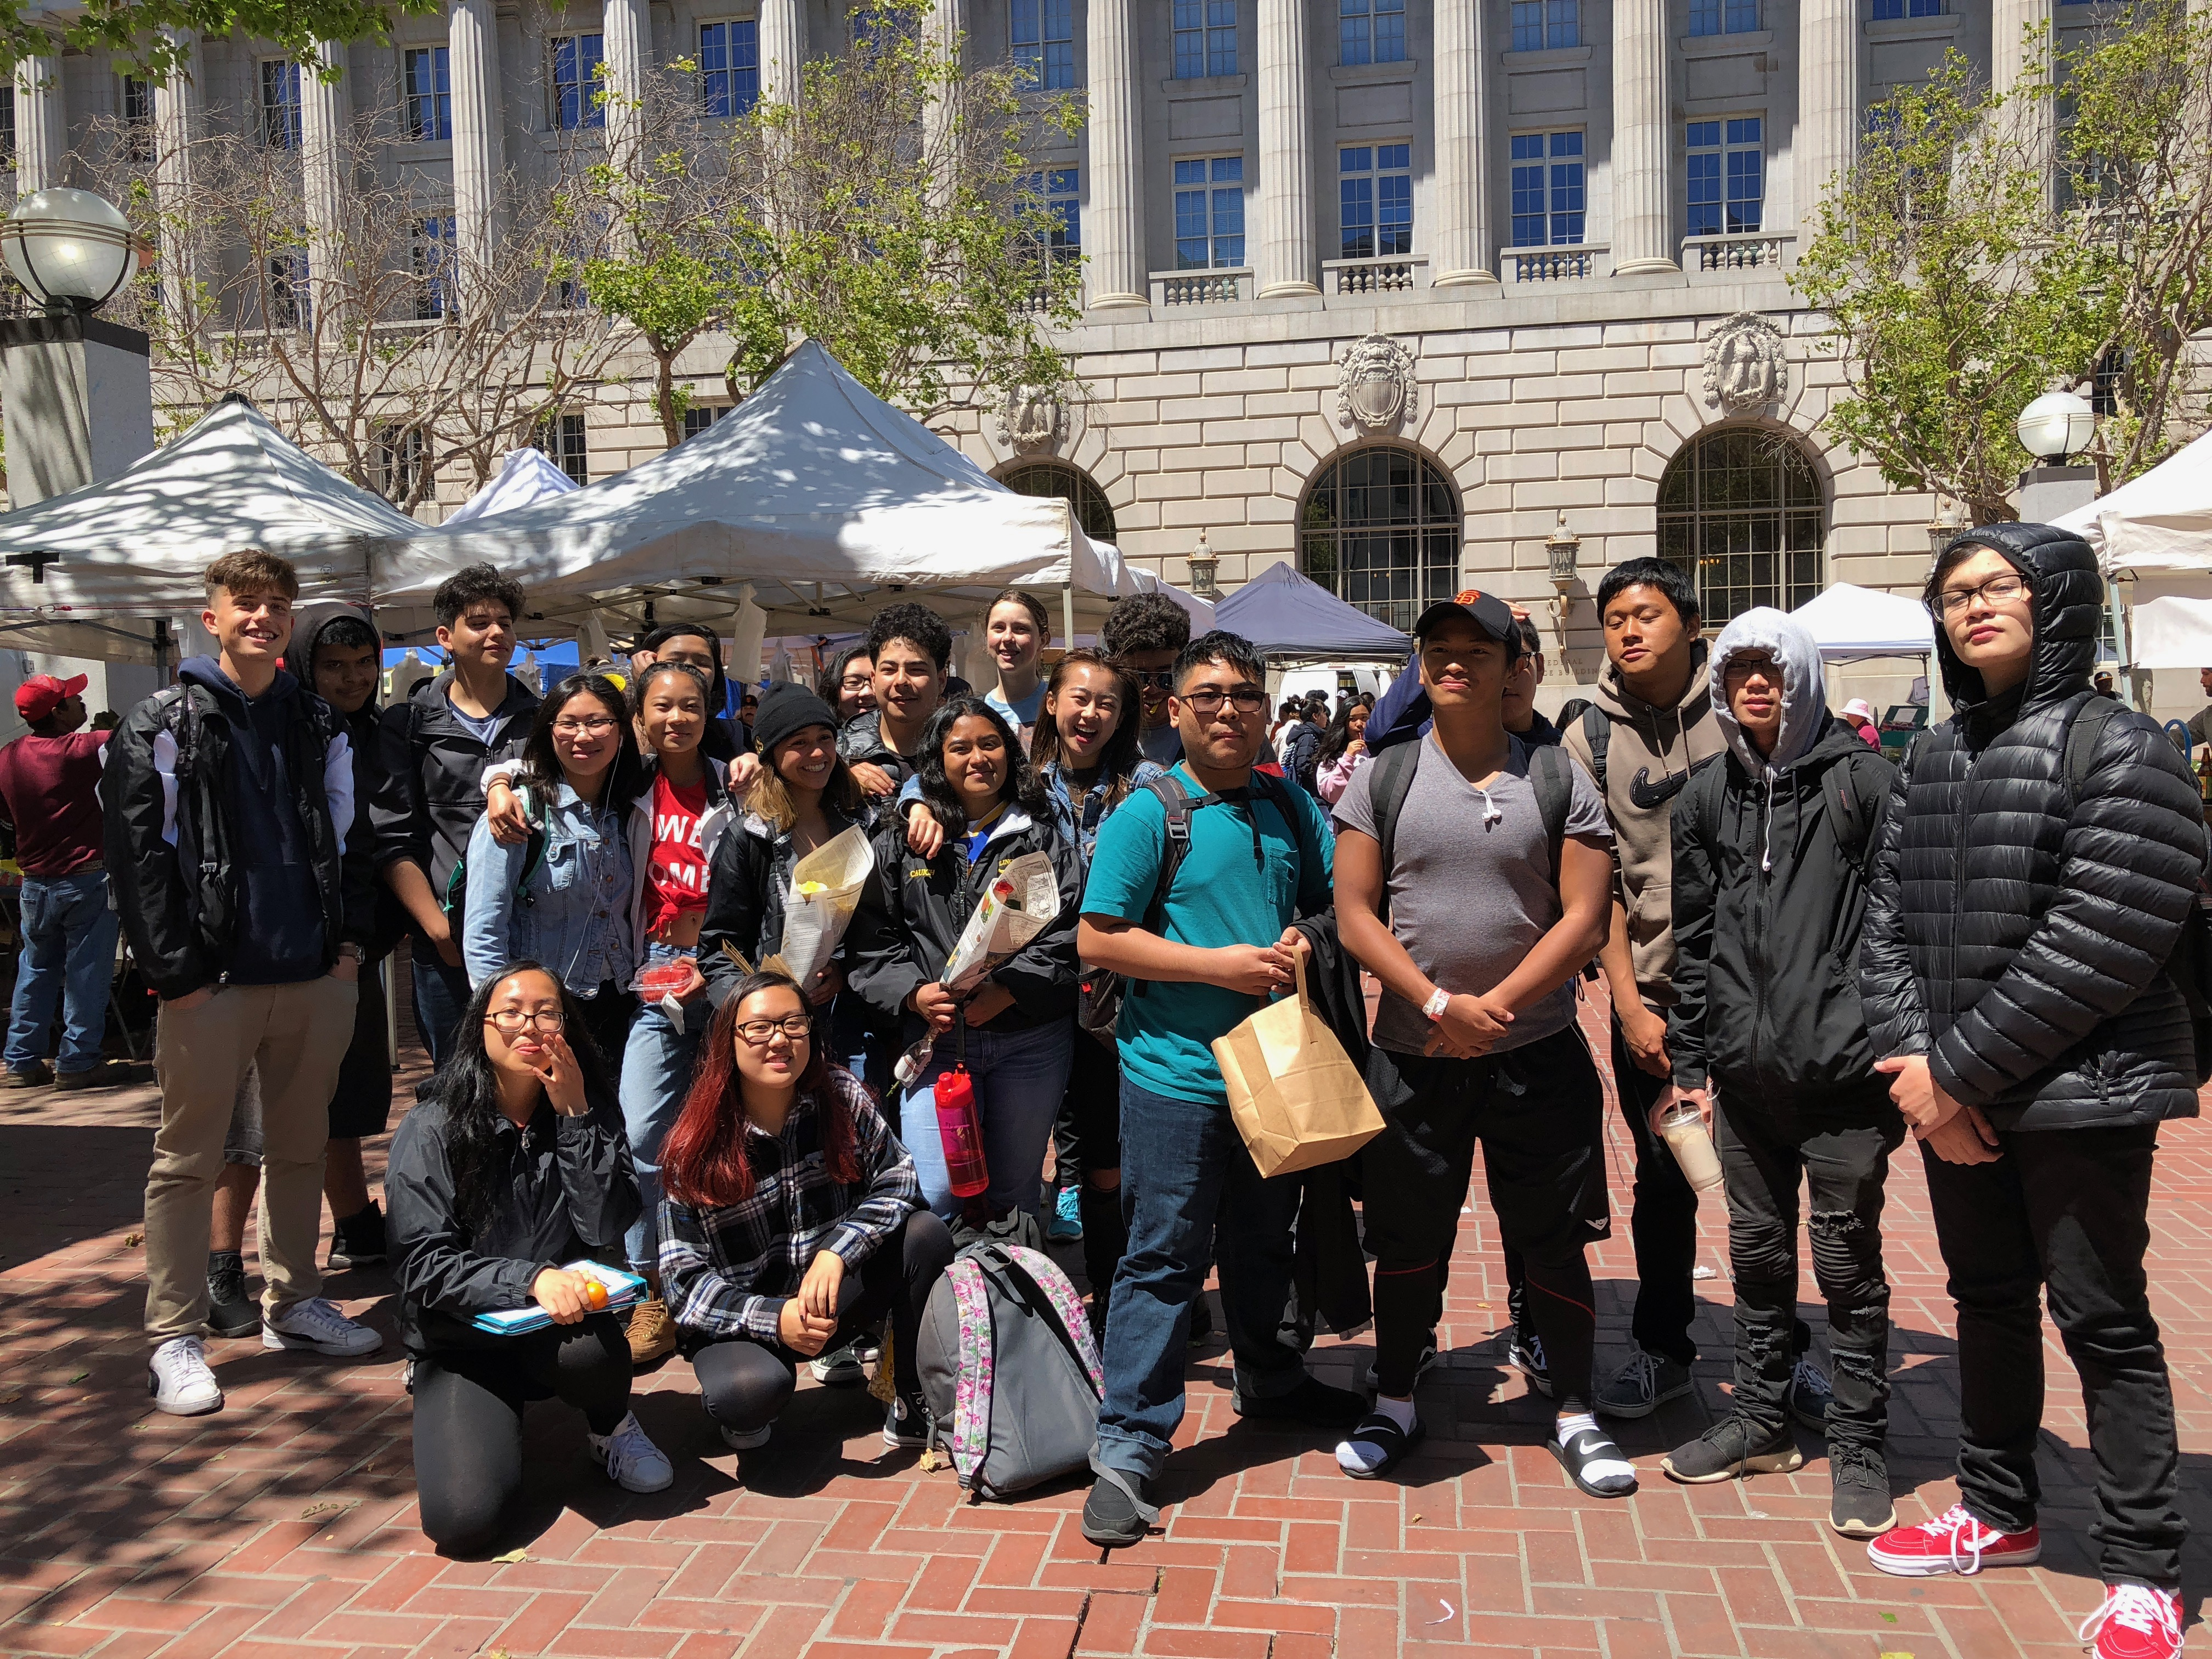 Green Academy students at the SF farmers market